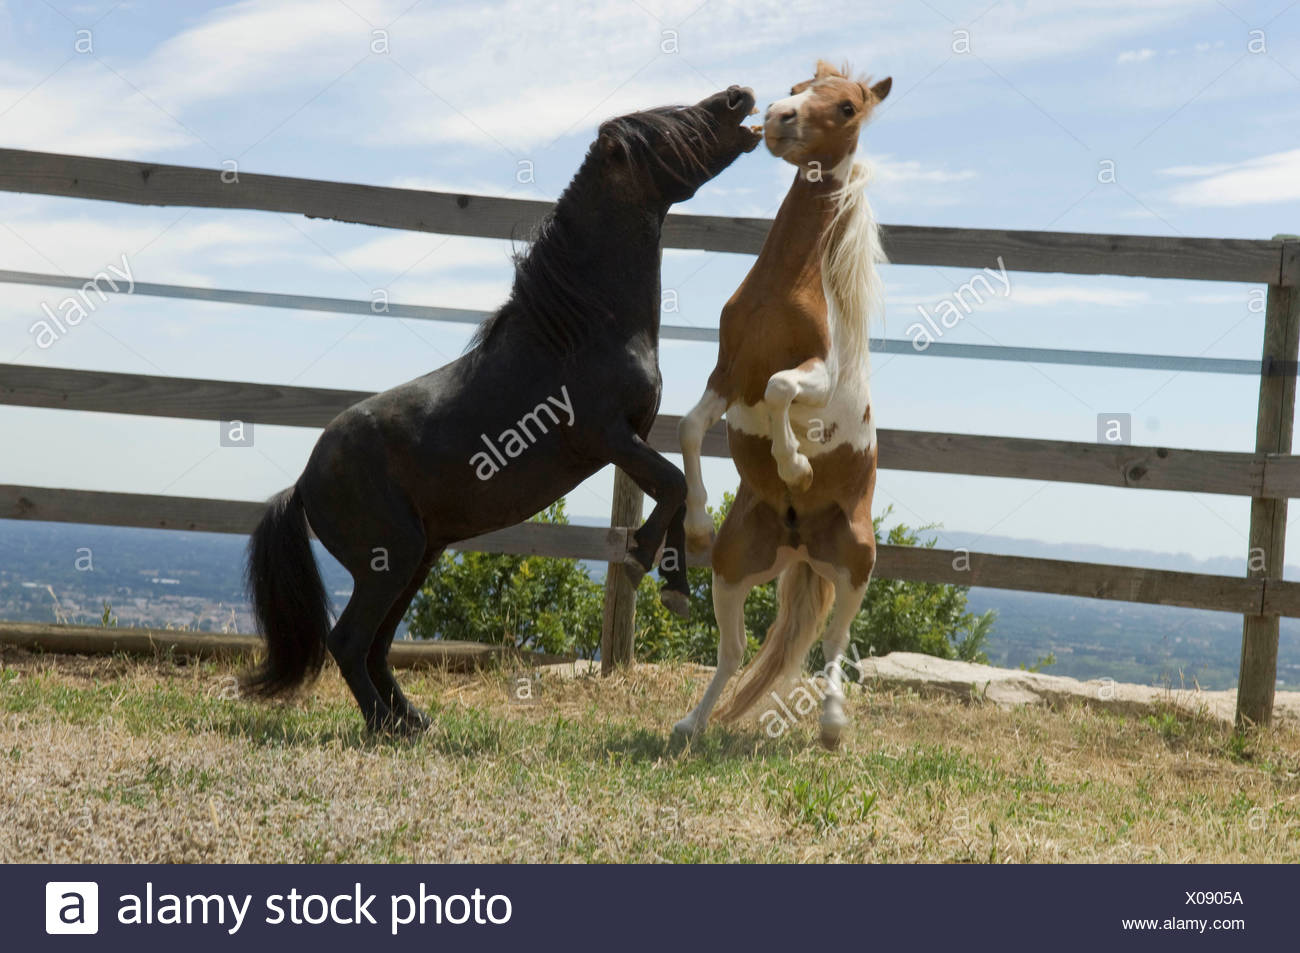 Two miniature horses frolicking - Stock Image